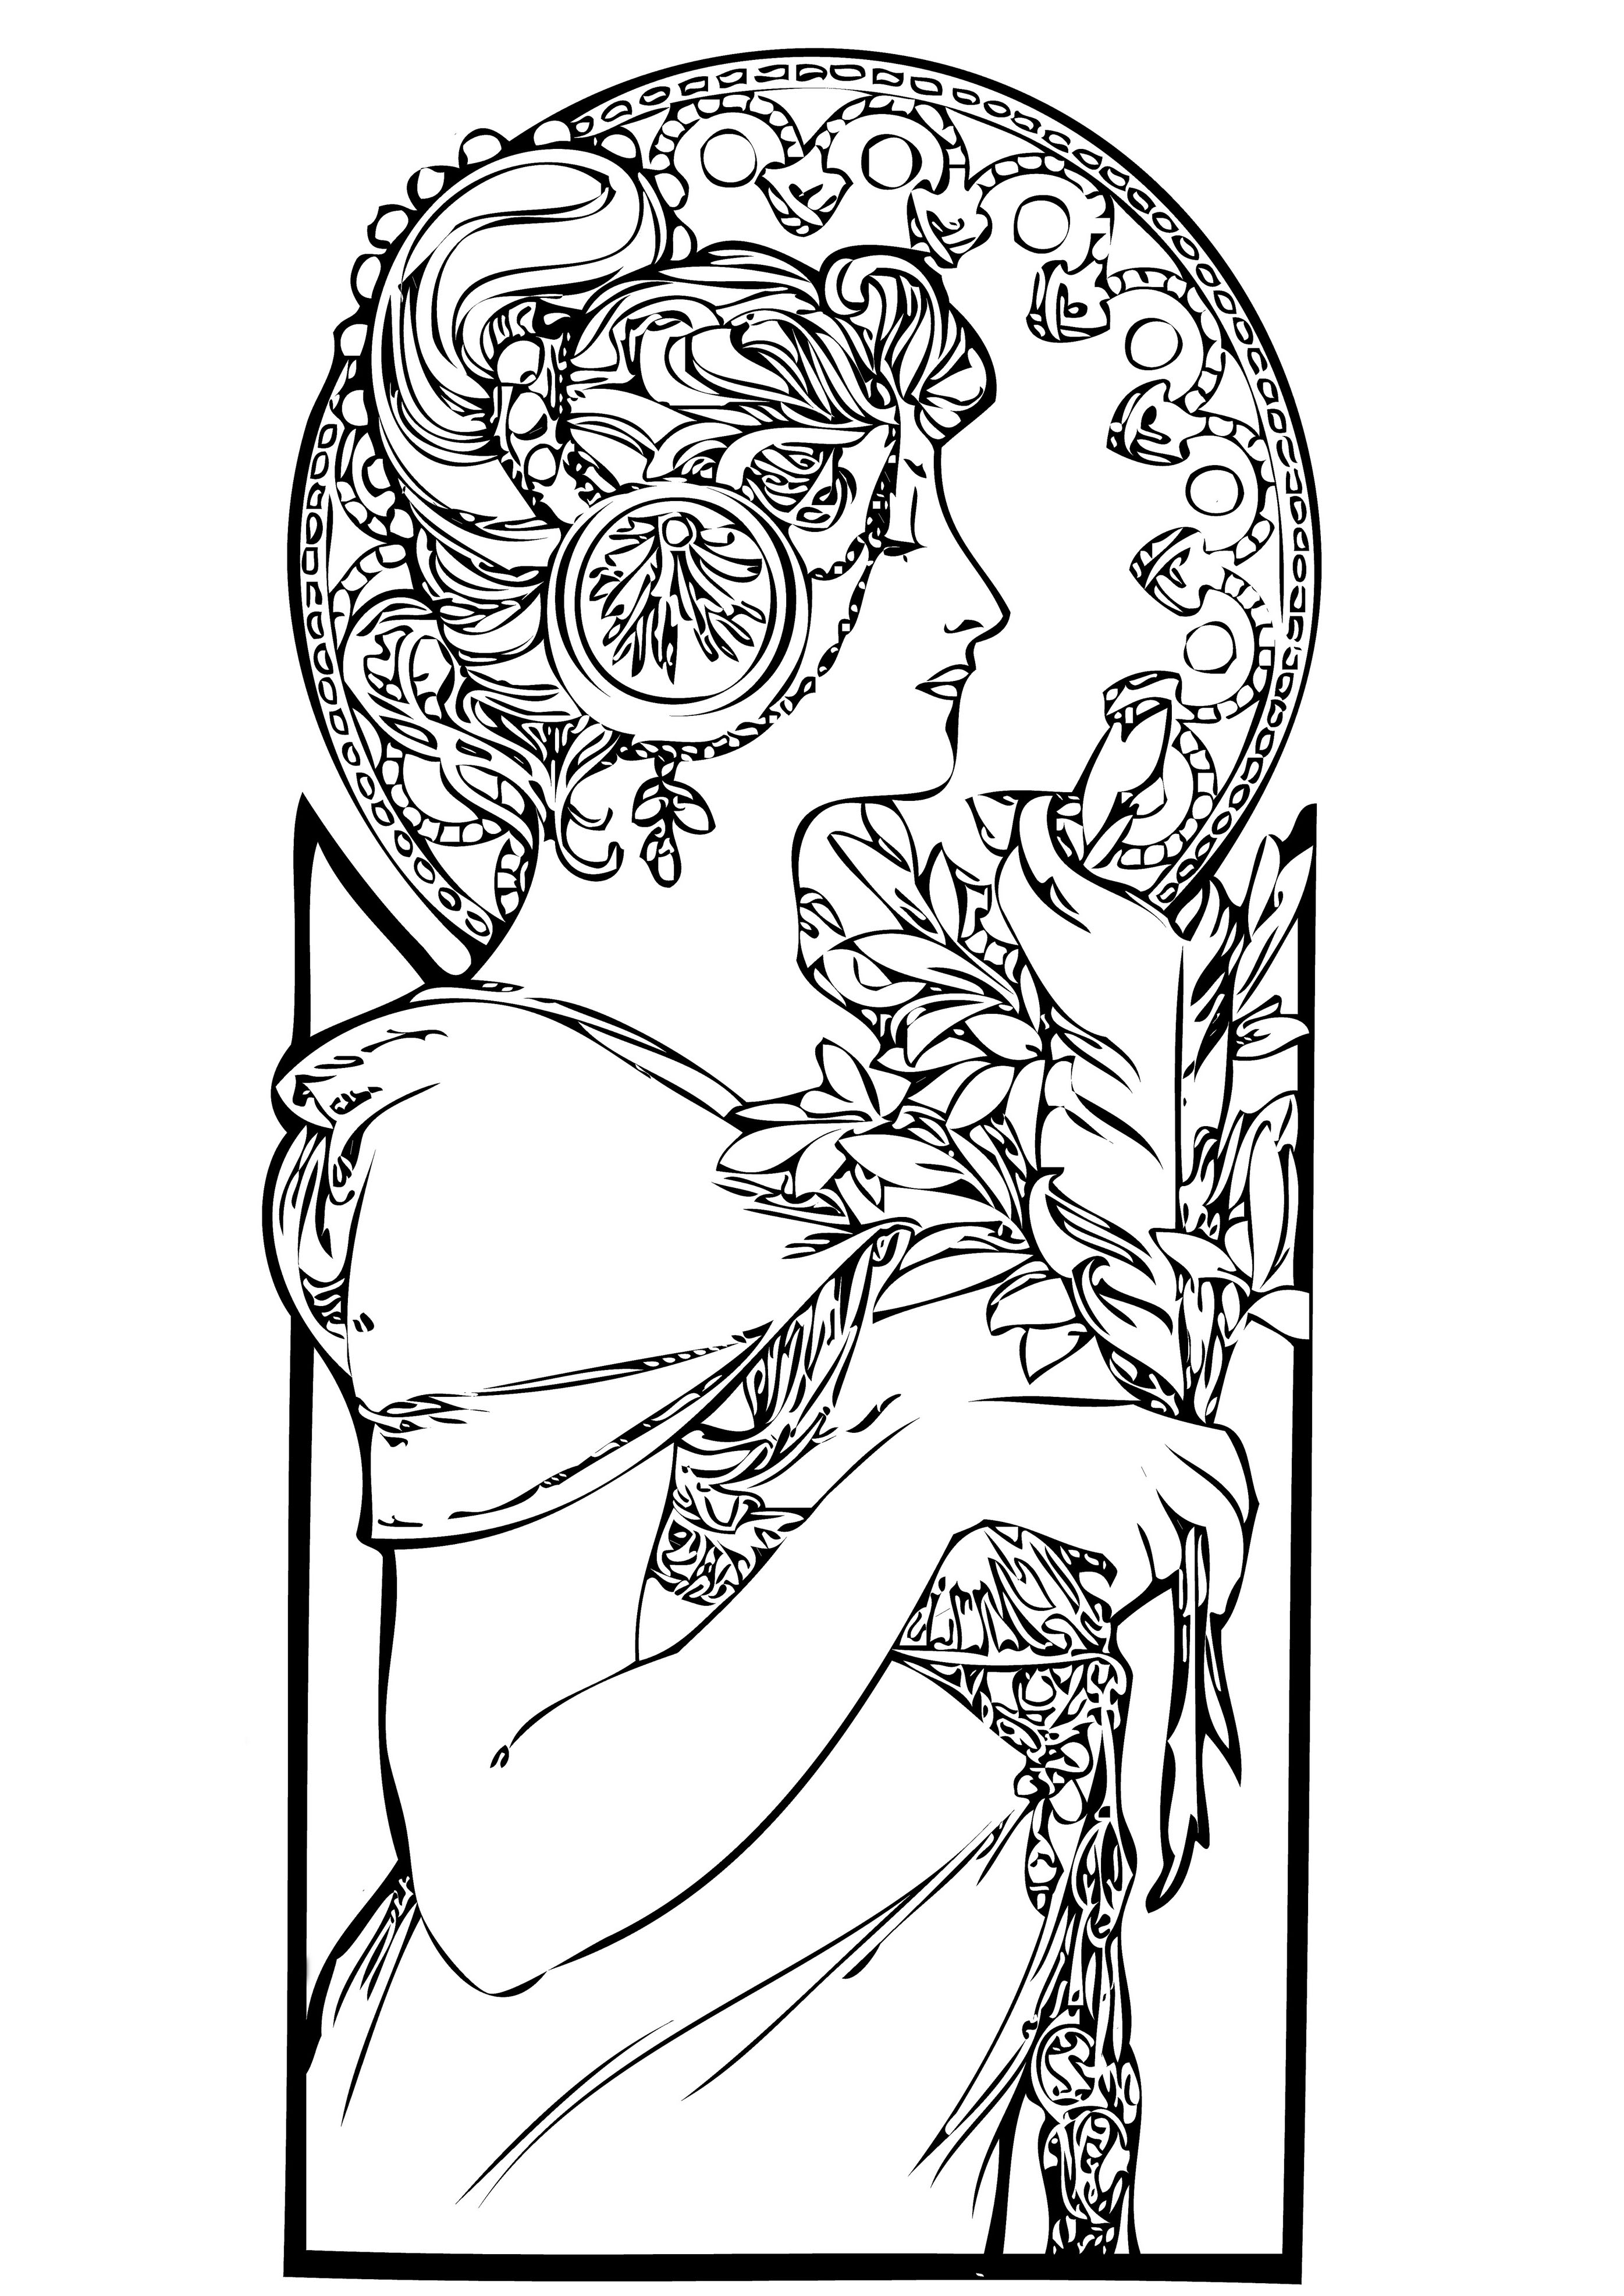 a beautiful woman drawn with art nouveau style from the gallery art nouveau